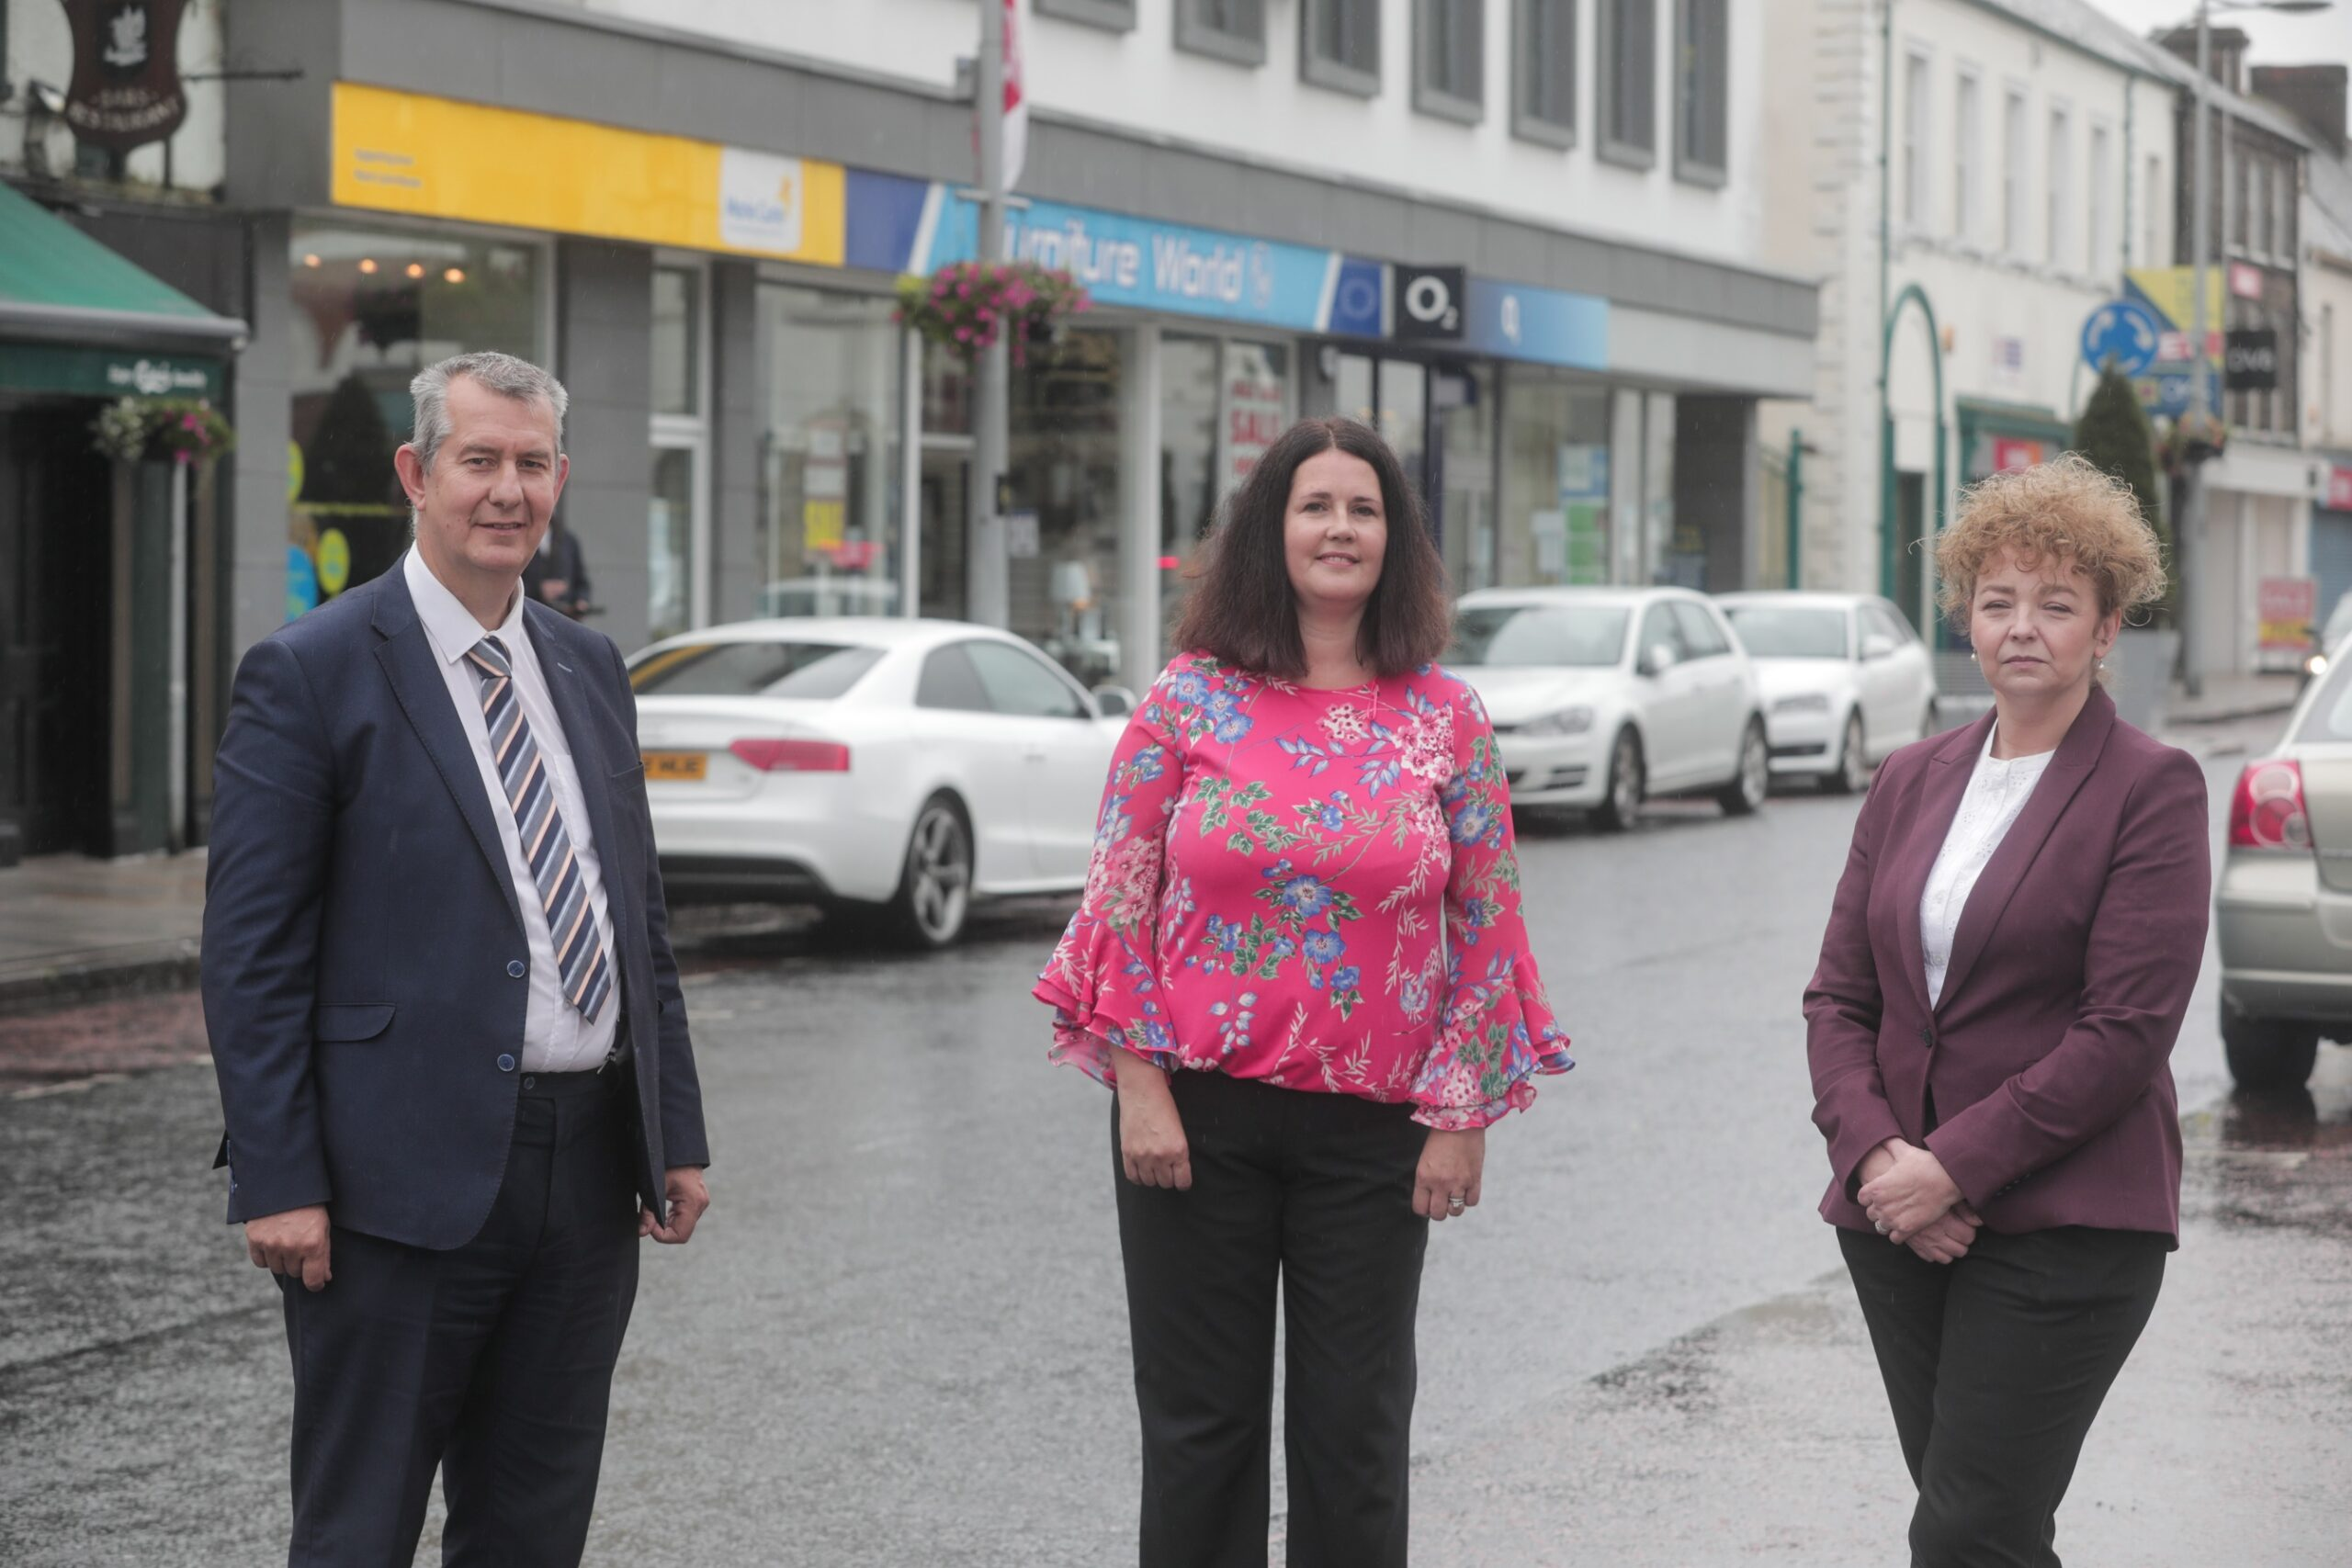 11m capital revitalise - Newry Times newspaper